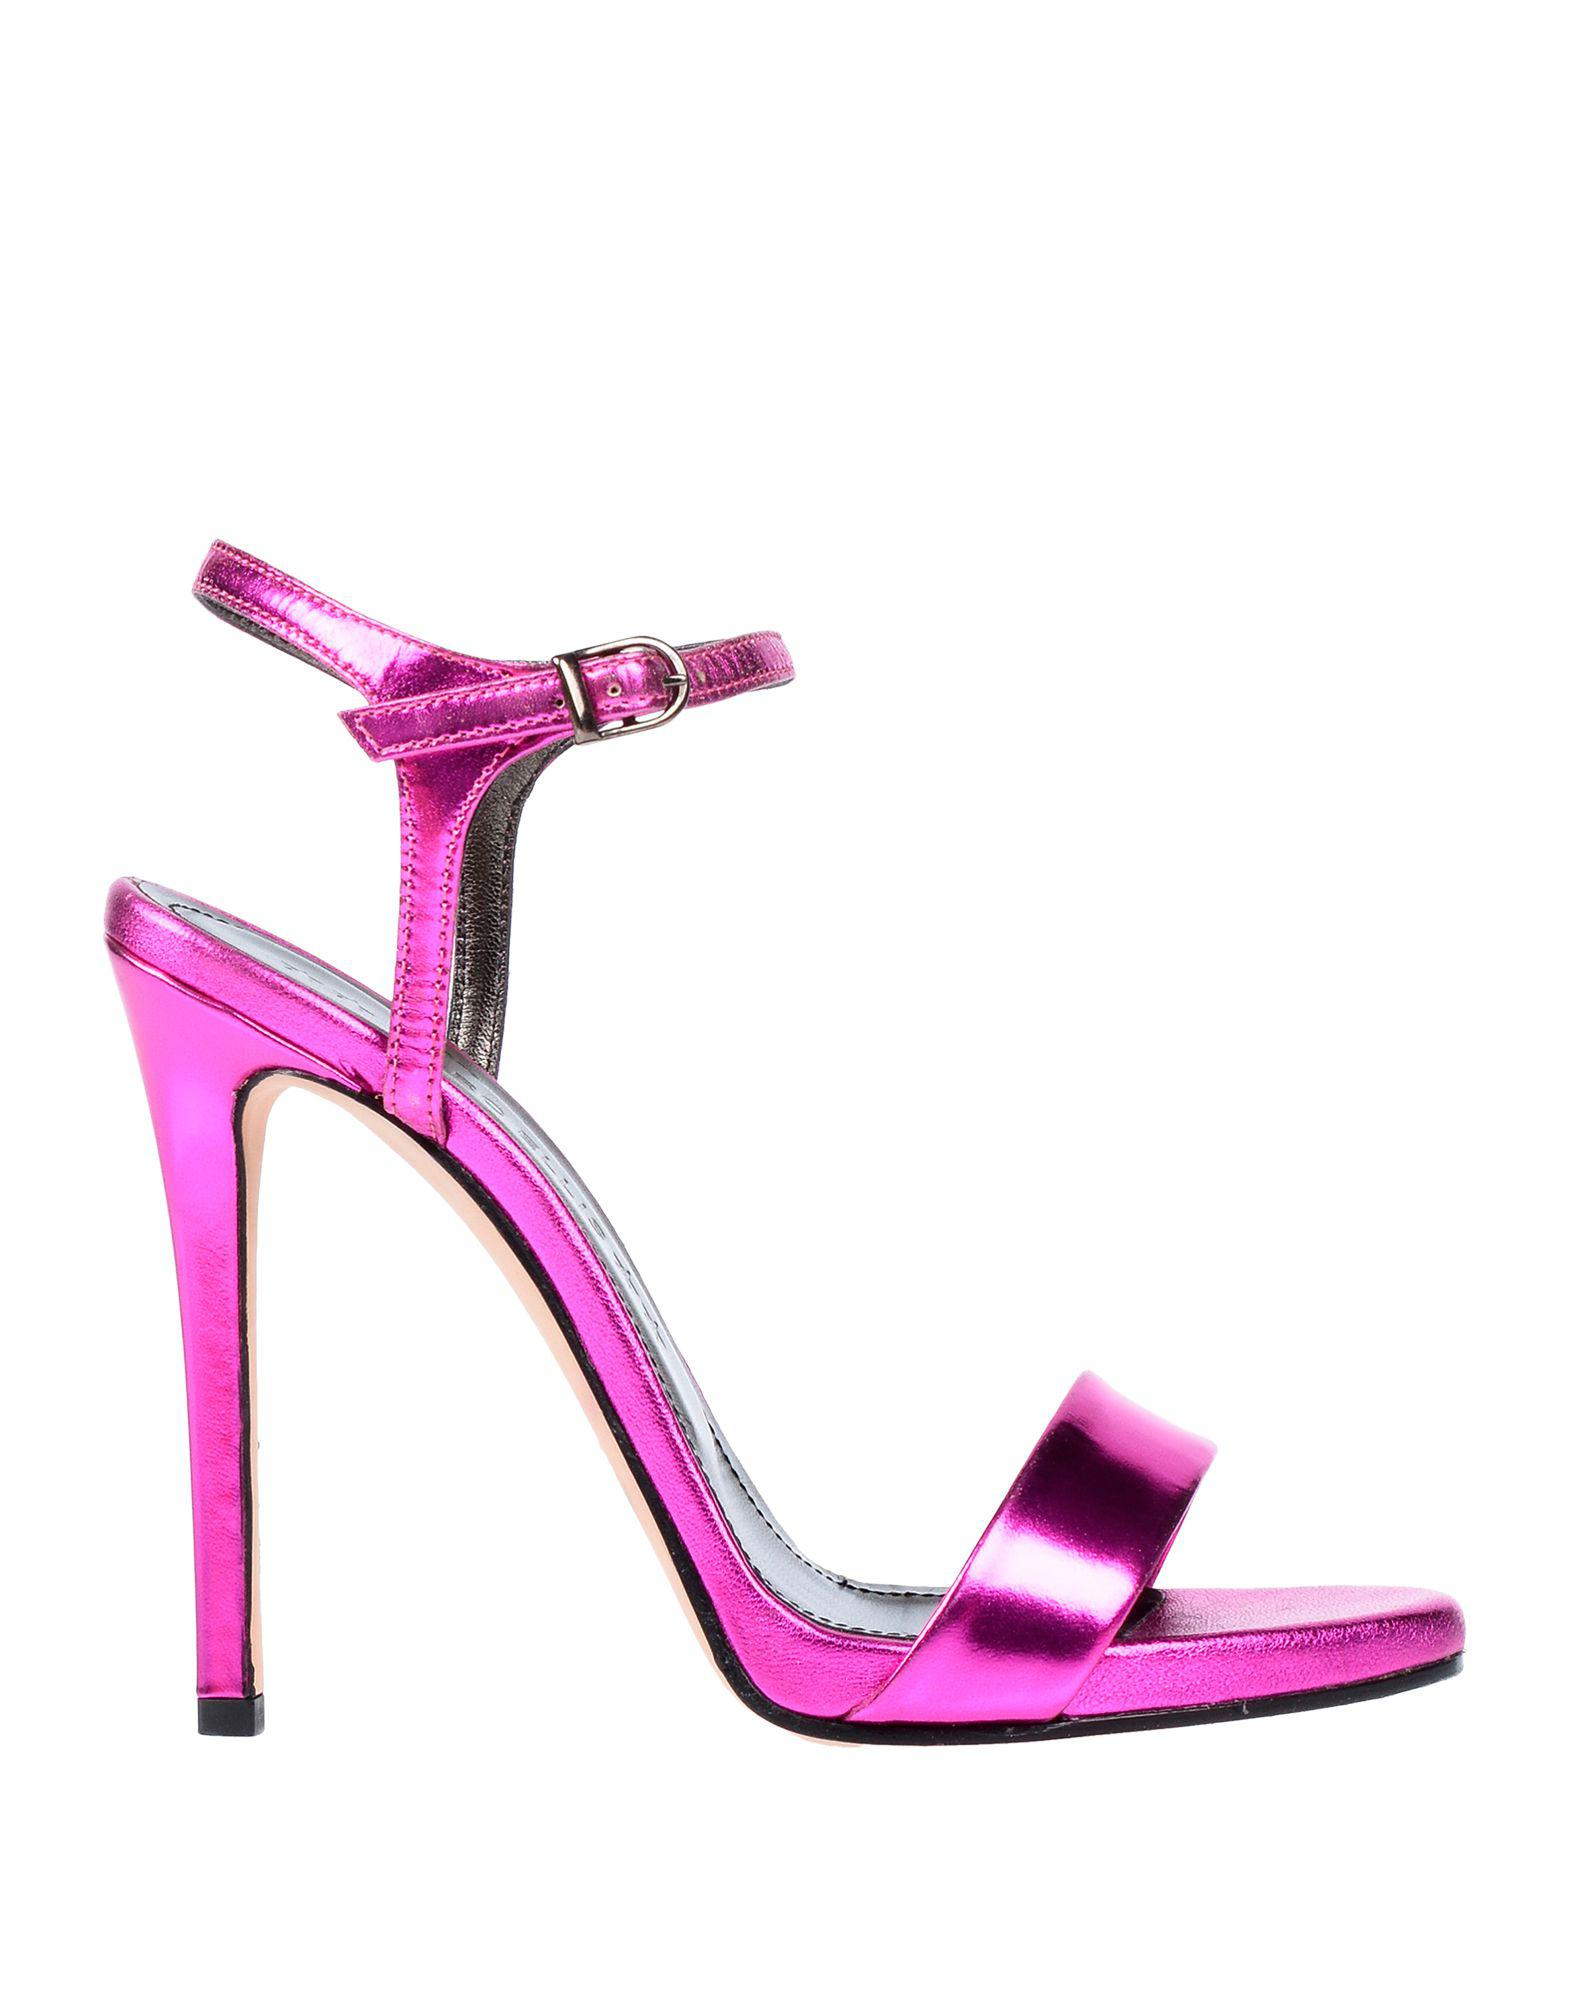 Lyst - Marc Ellis Sandals f73cad1431c